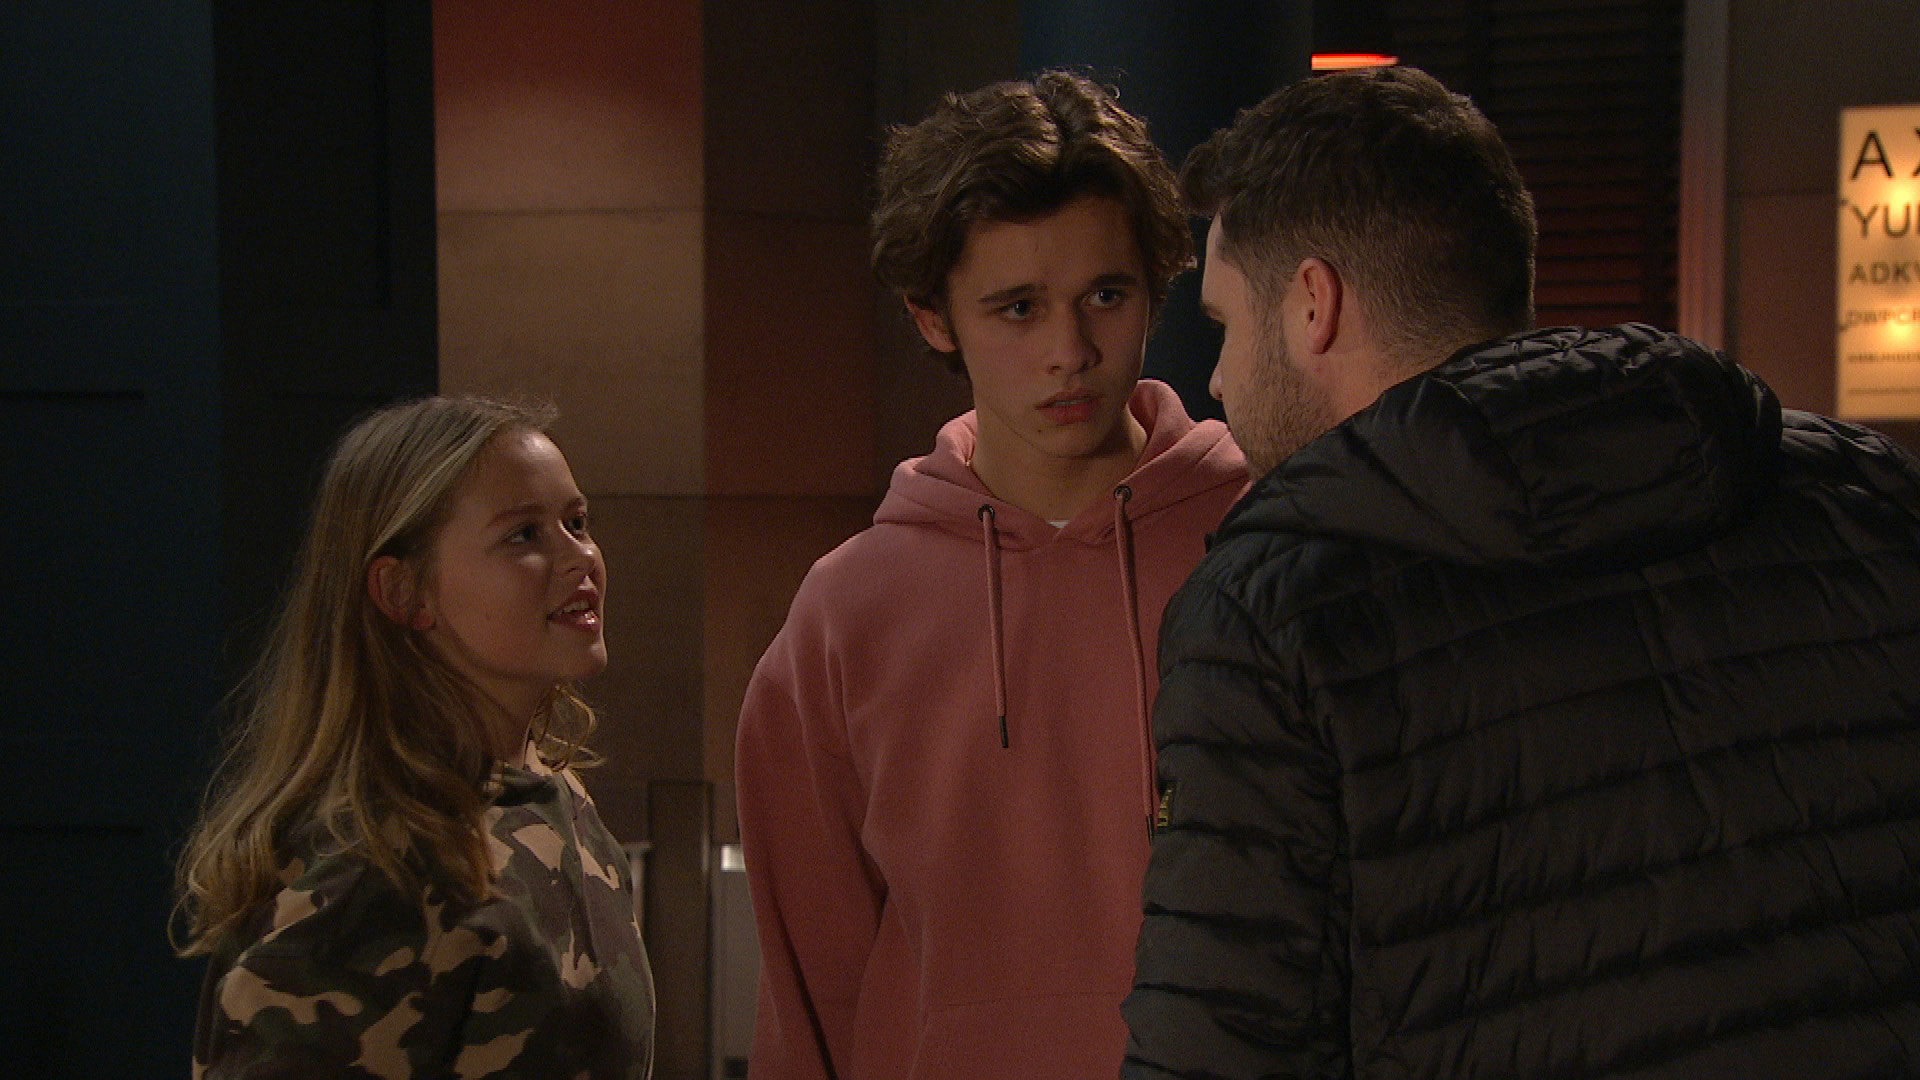 Emmerdale spoilers: Liv Flaherty opens up to Jacob Gallagher about her asexuality during a date